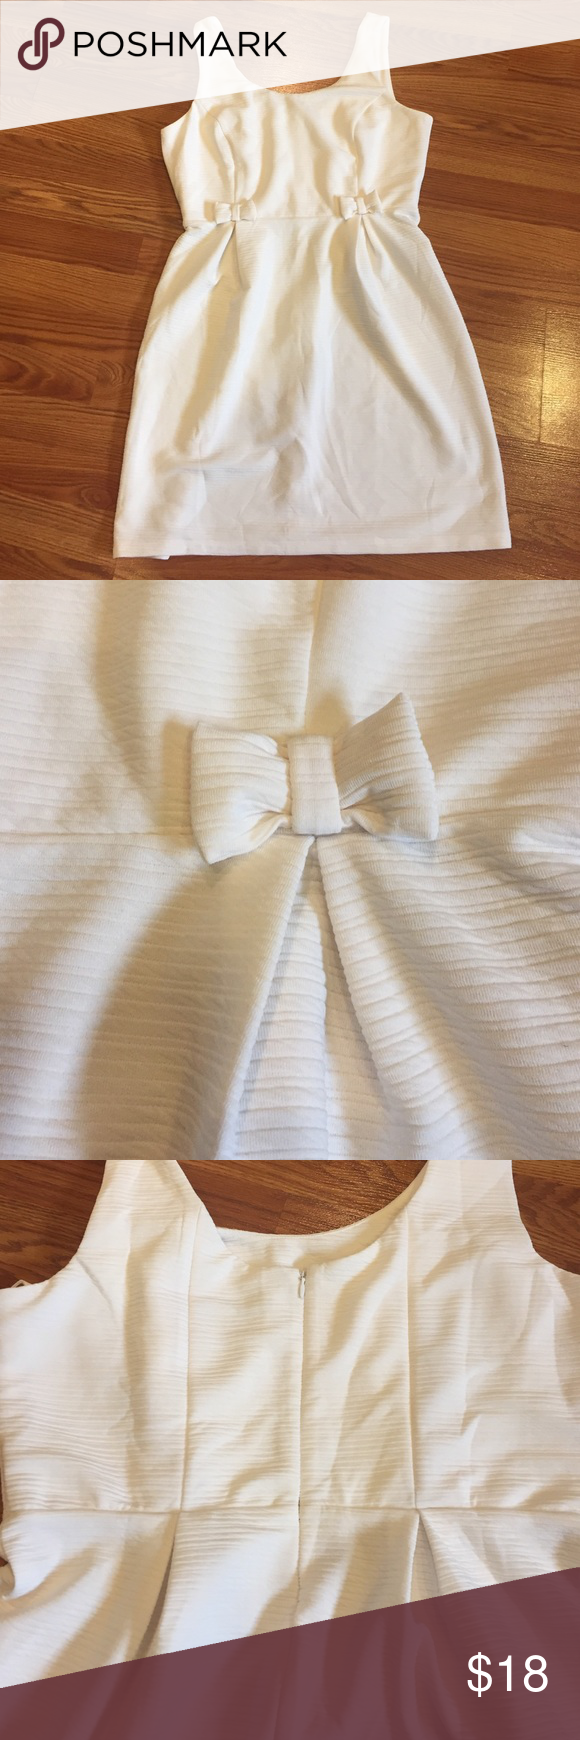 LC Lauren Conrad Dress Adorable LC cream dress with little bow detail on the front. Zipper back. Size 16. Worn once. LC Lauren Conrad Dresses Wedding